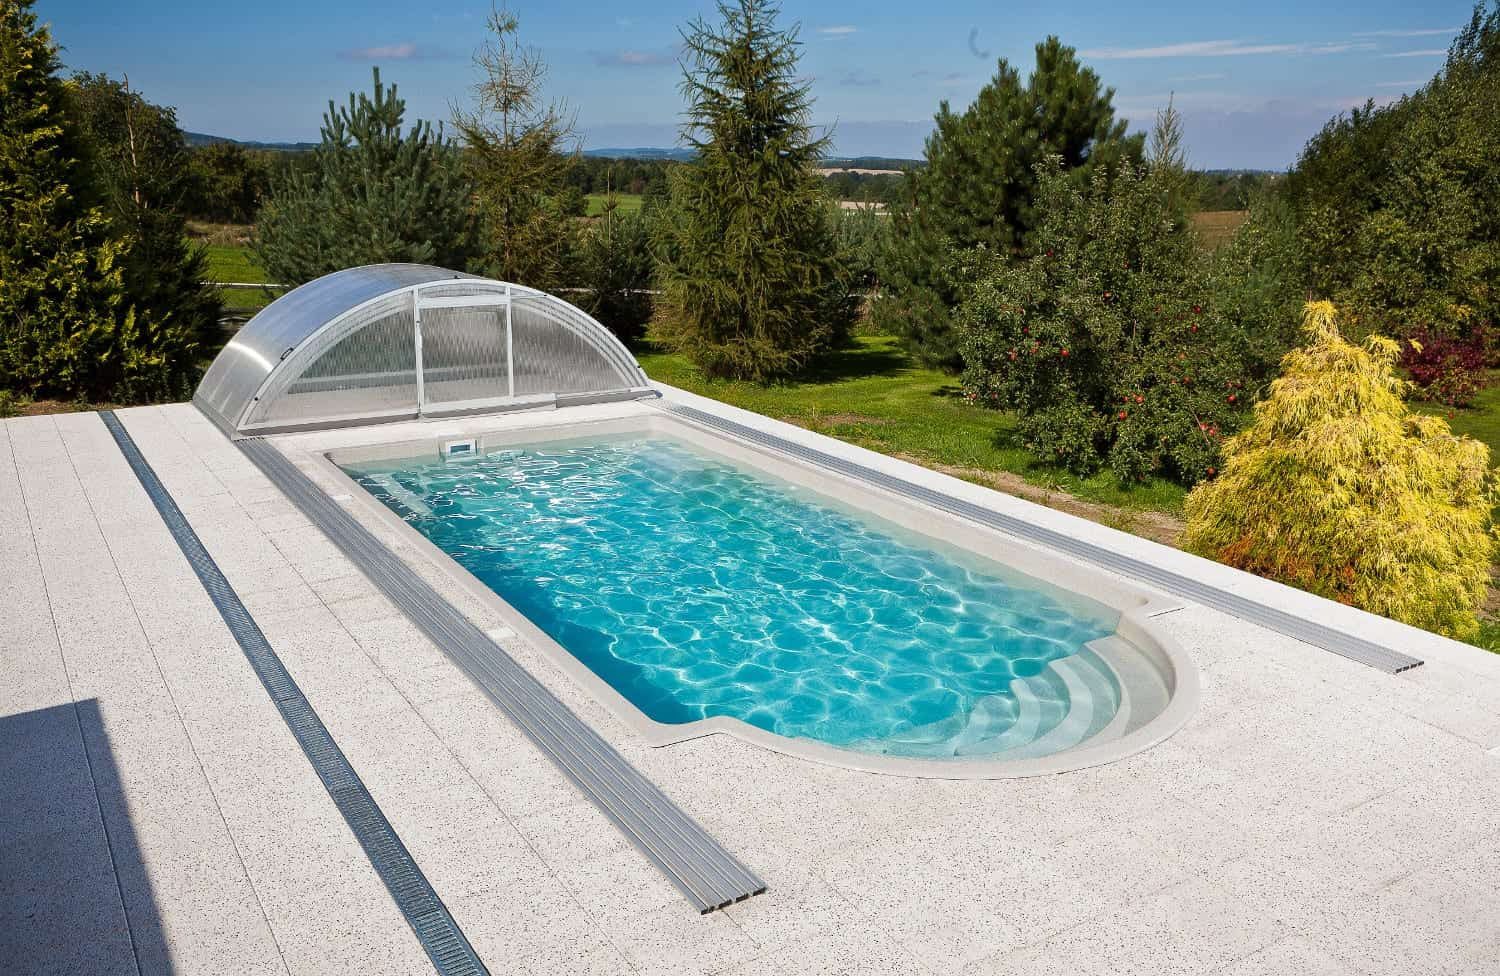 Topaz compact one-piece swimming pool